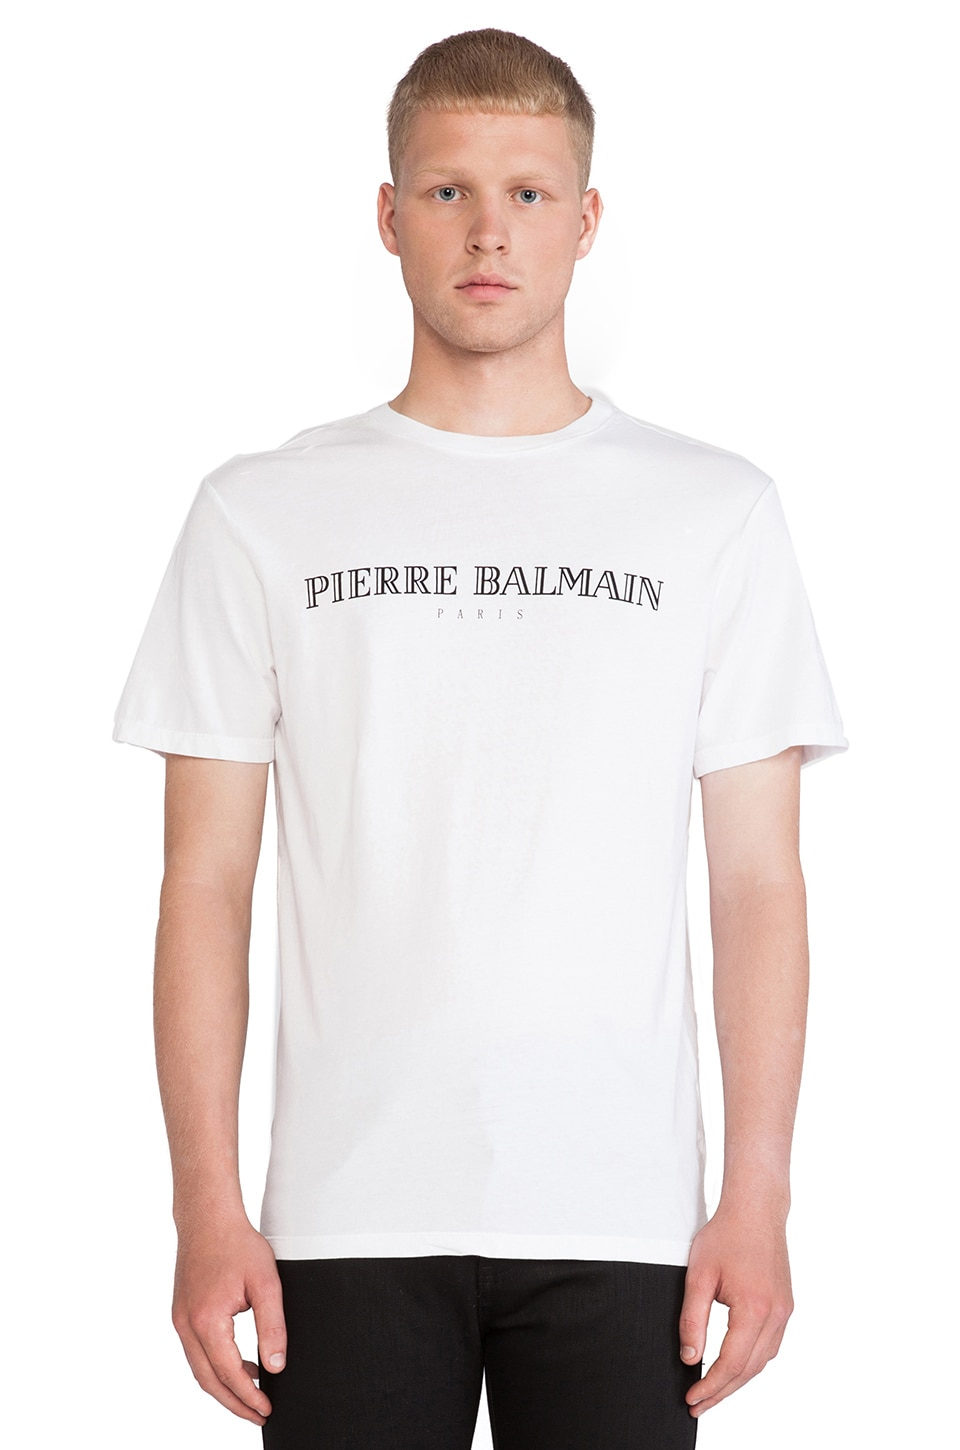 Pierre Balmain Tee in White